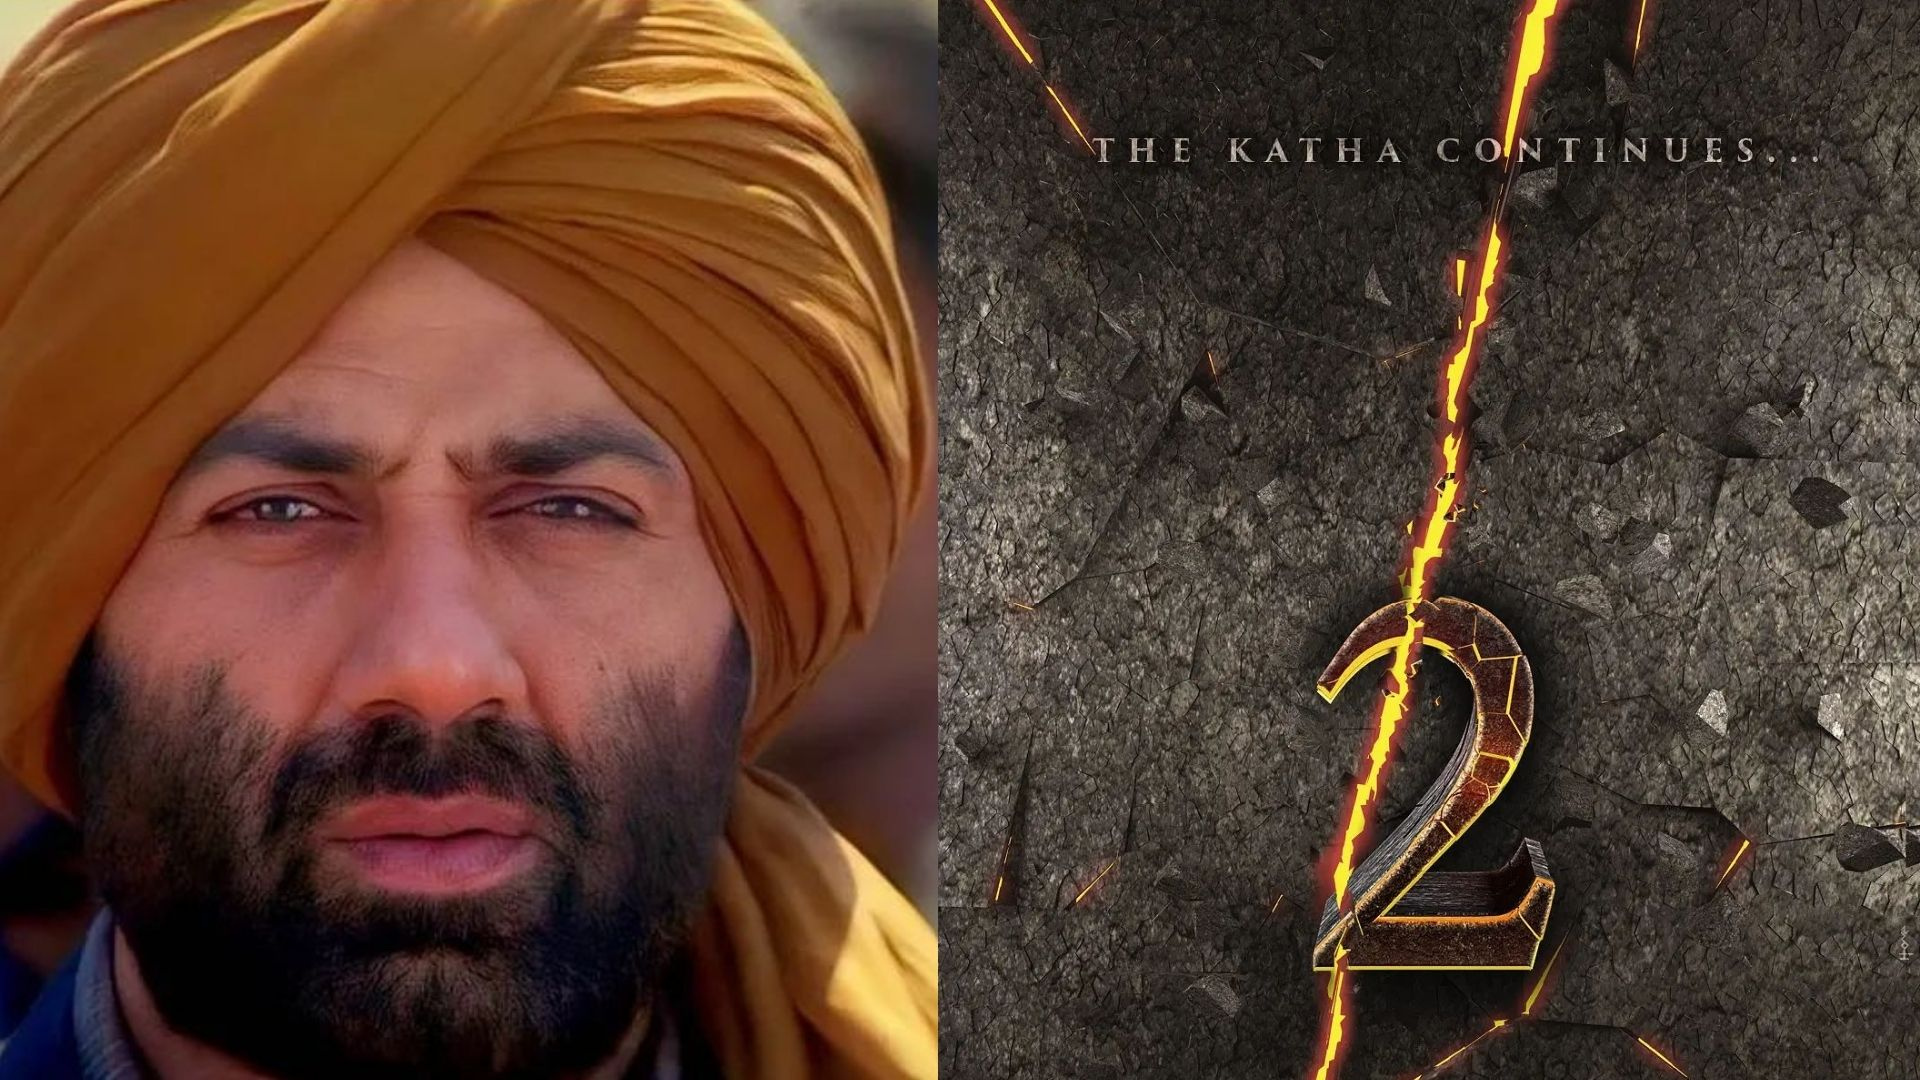 Gadar 2: Sunny Deol To Make A Comeback After Two Decades; Shares An Intriguing Motion Poster Of The Sequel Film